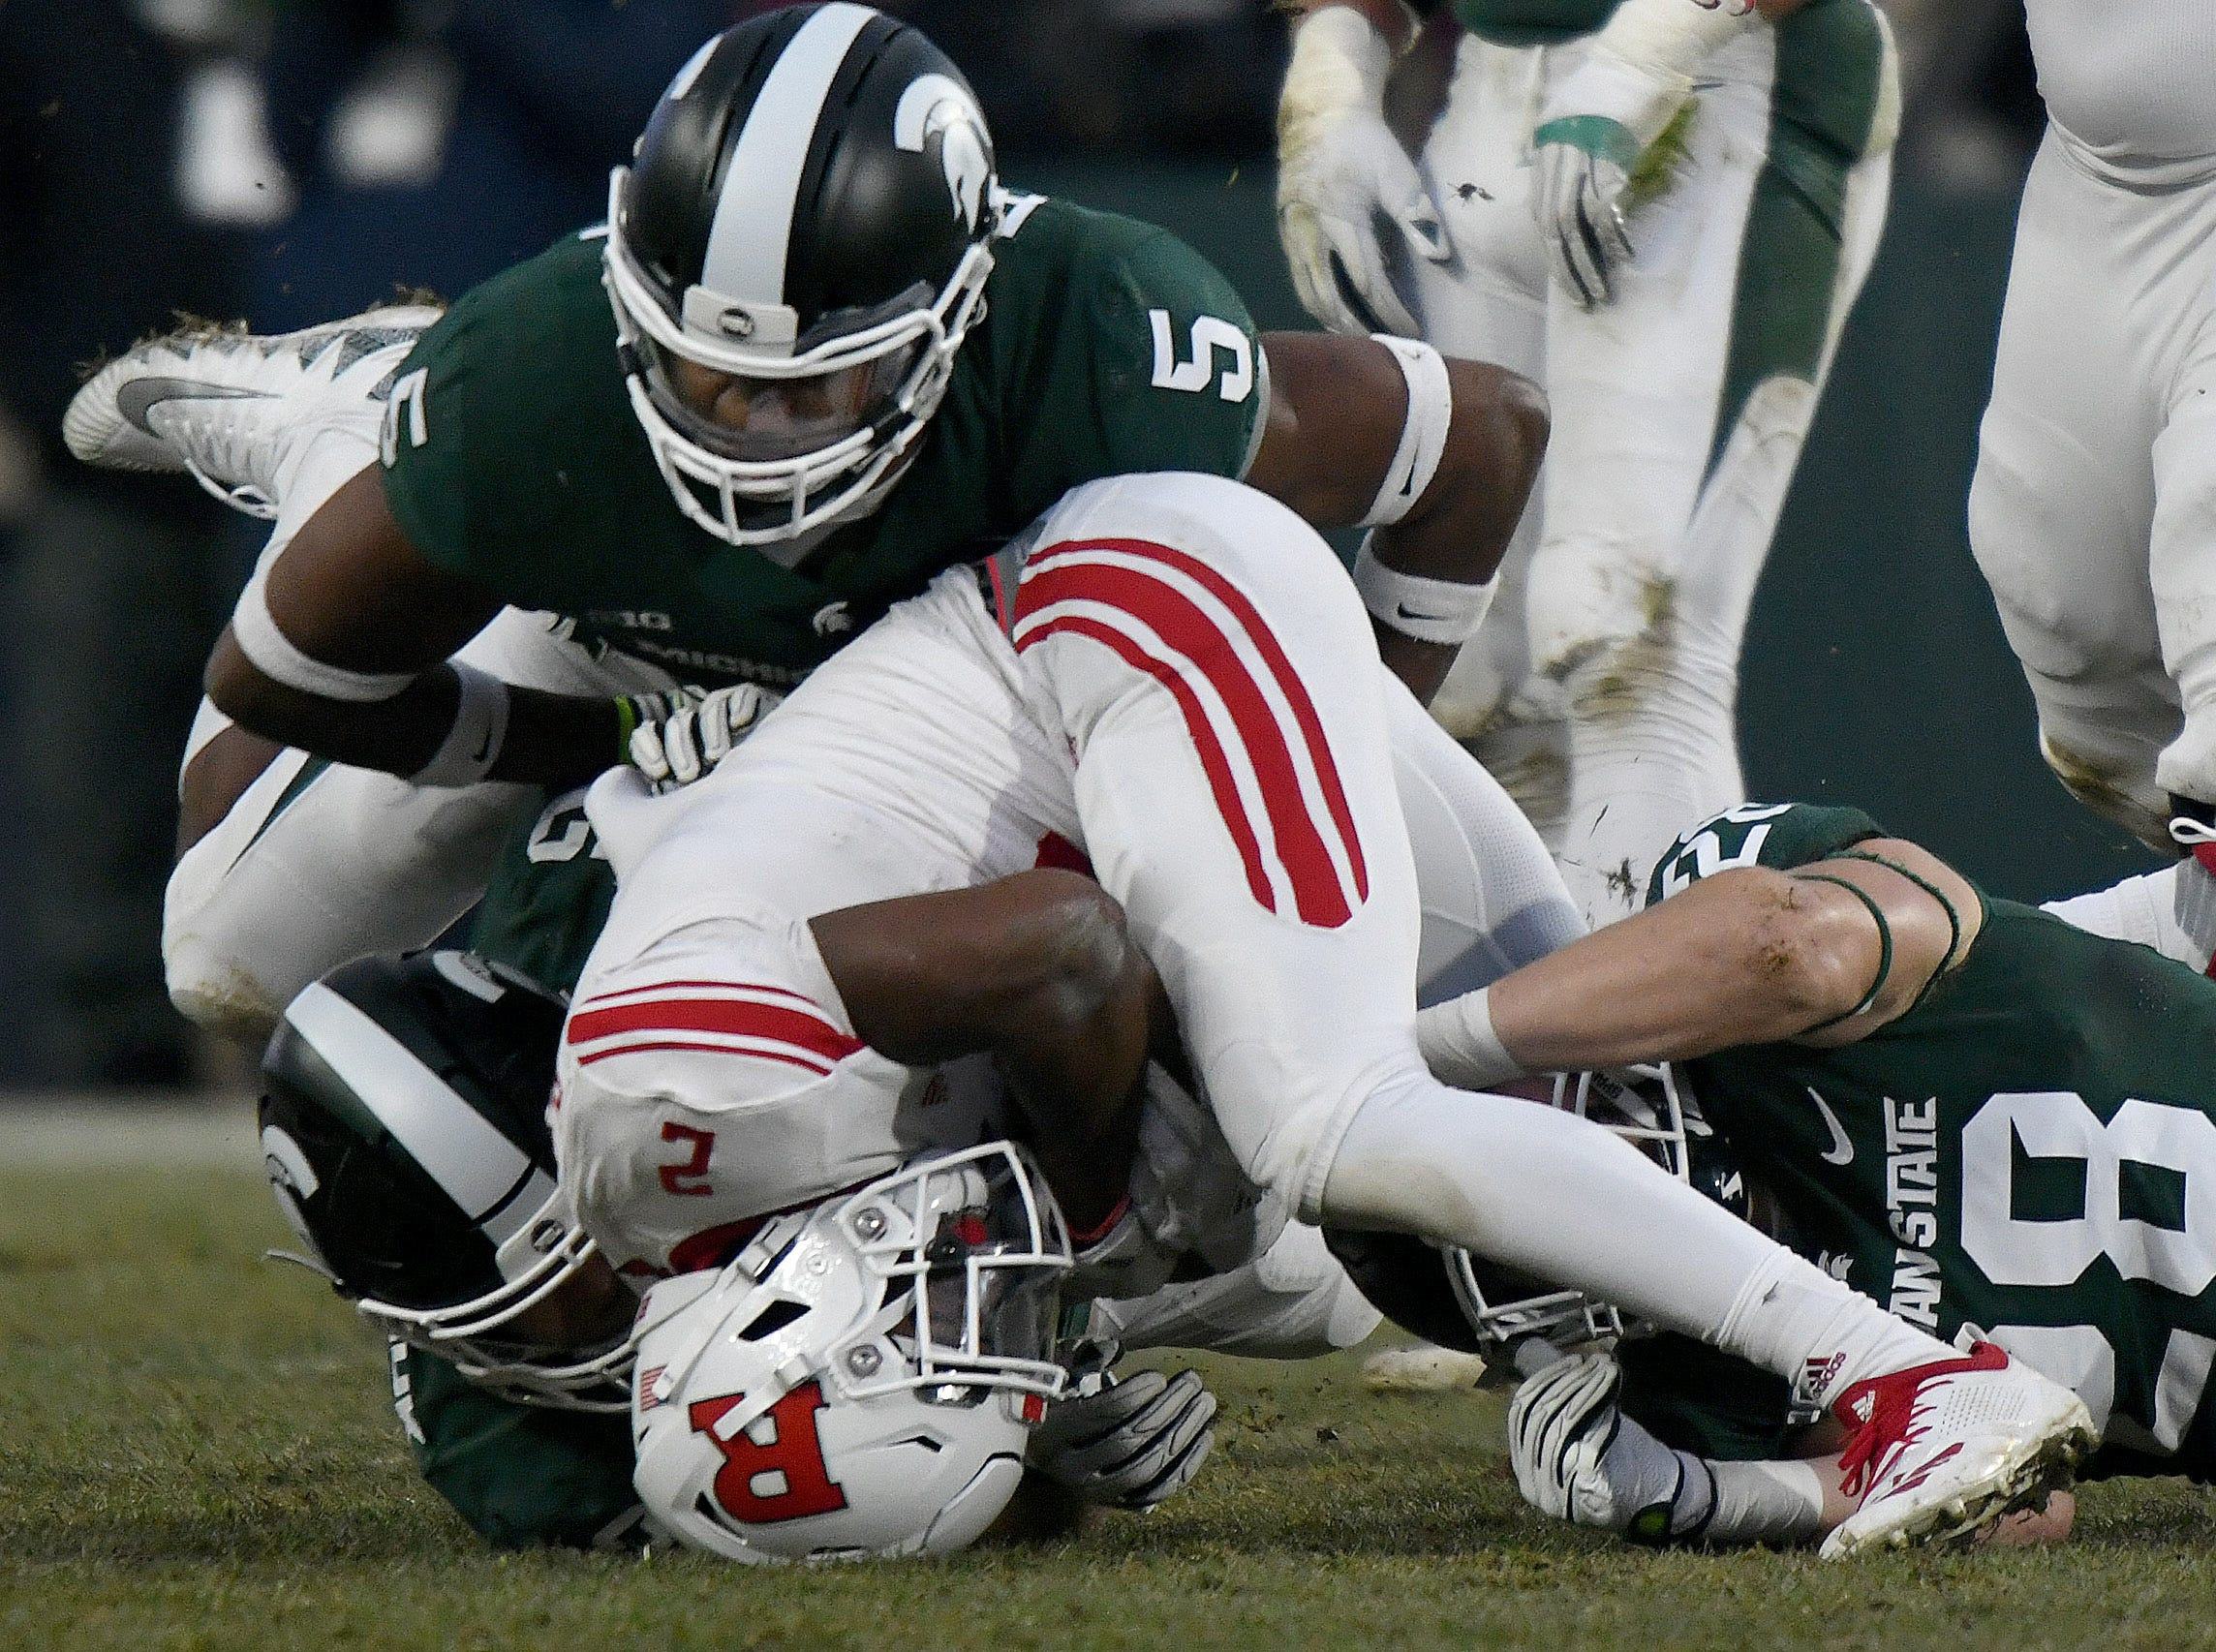 14. Rutgers (1-11, 0-9) – The Scarlet Knight nearly pulled off the upset in the finale against Michigan State for the first Big Ten win of the season. Instead, they finish winless in the conference for the second time in three seasons. Even so, coach Chris Ash was given a vote of confidence by the Rutgers brass and will be back for a fourth season. Last week: 14.